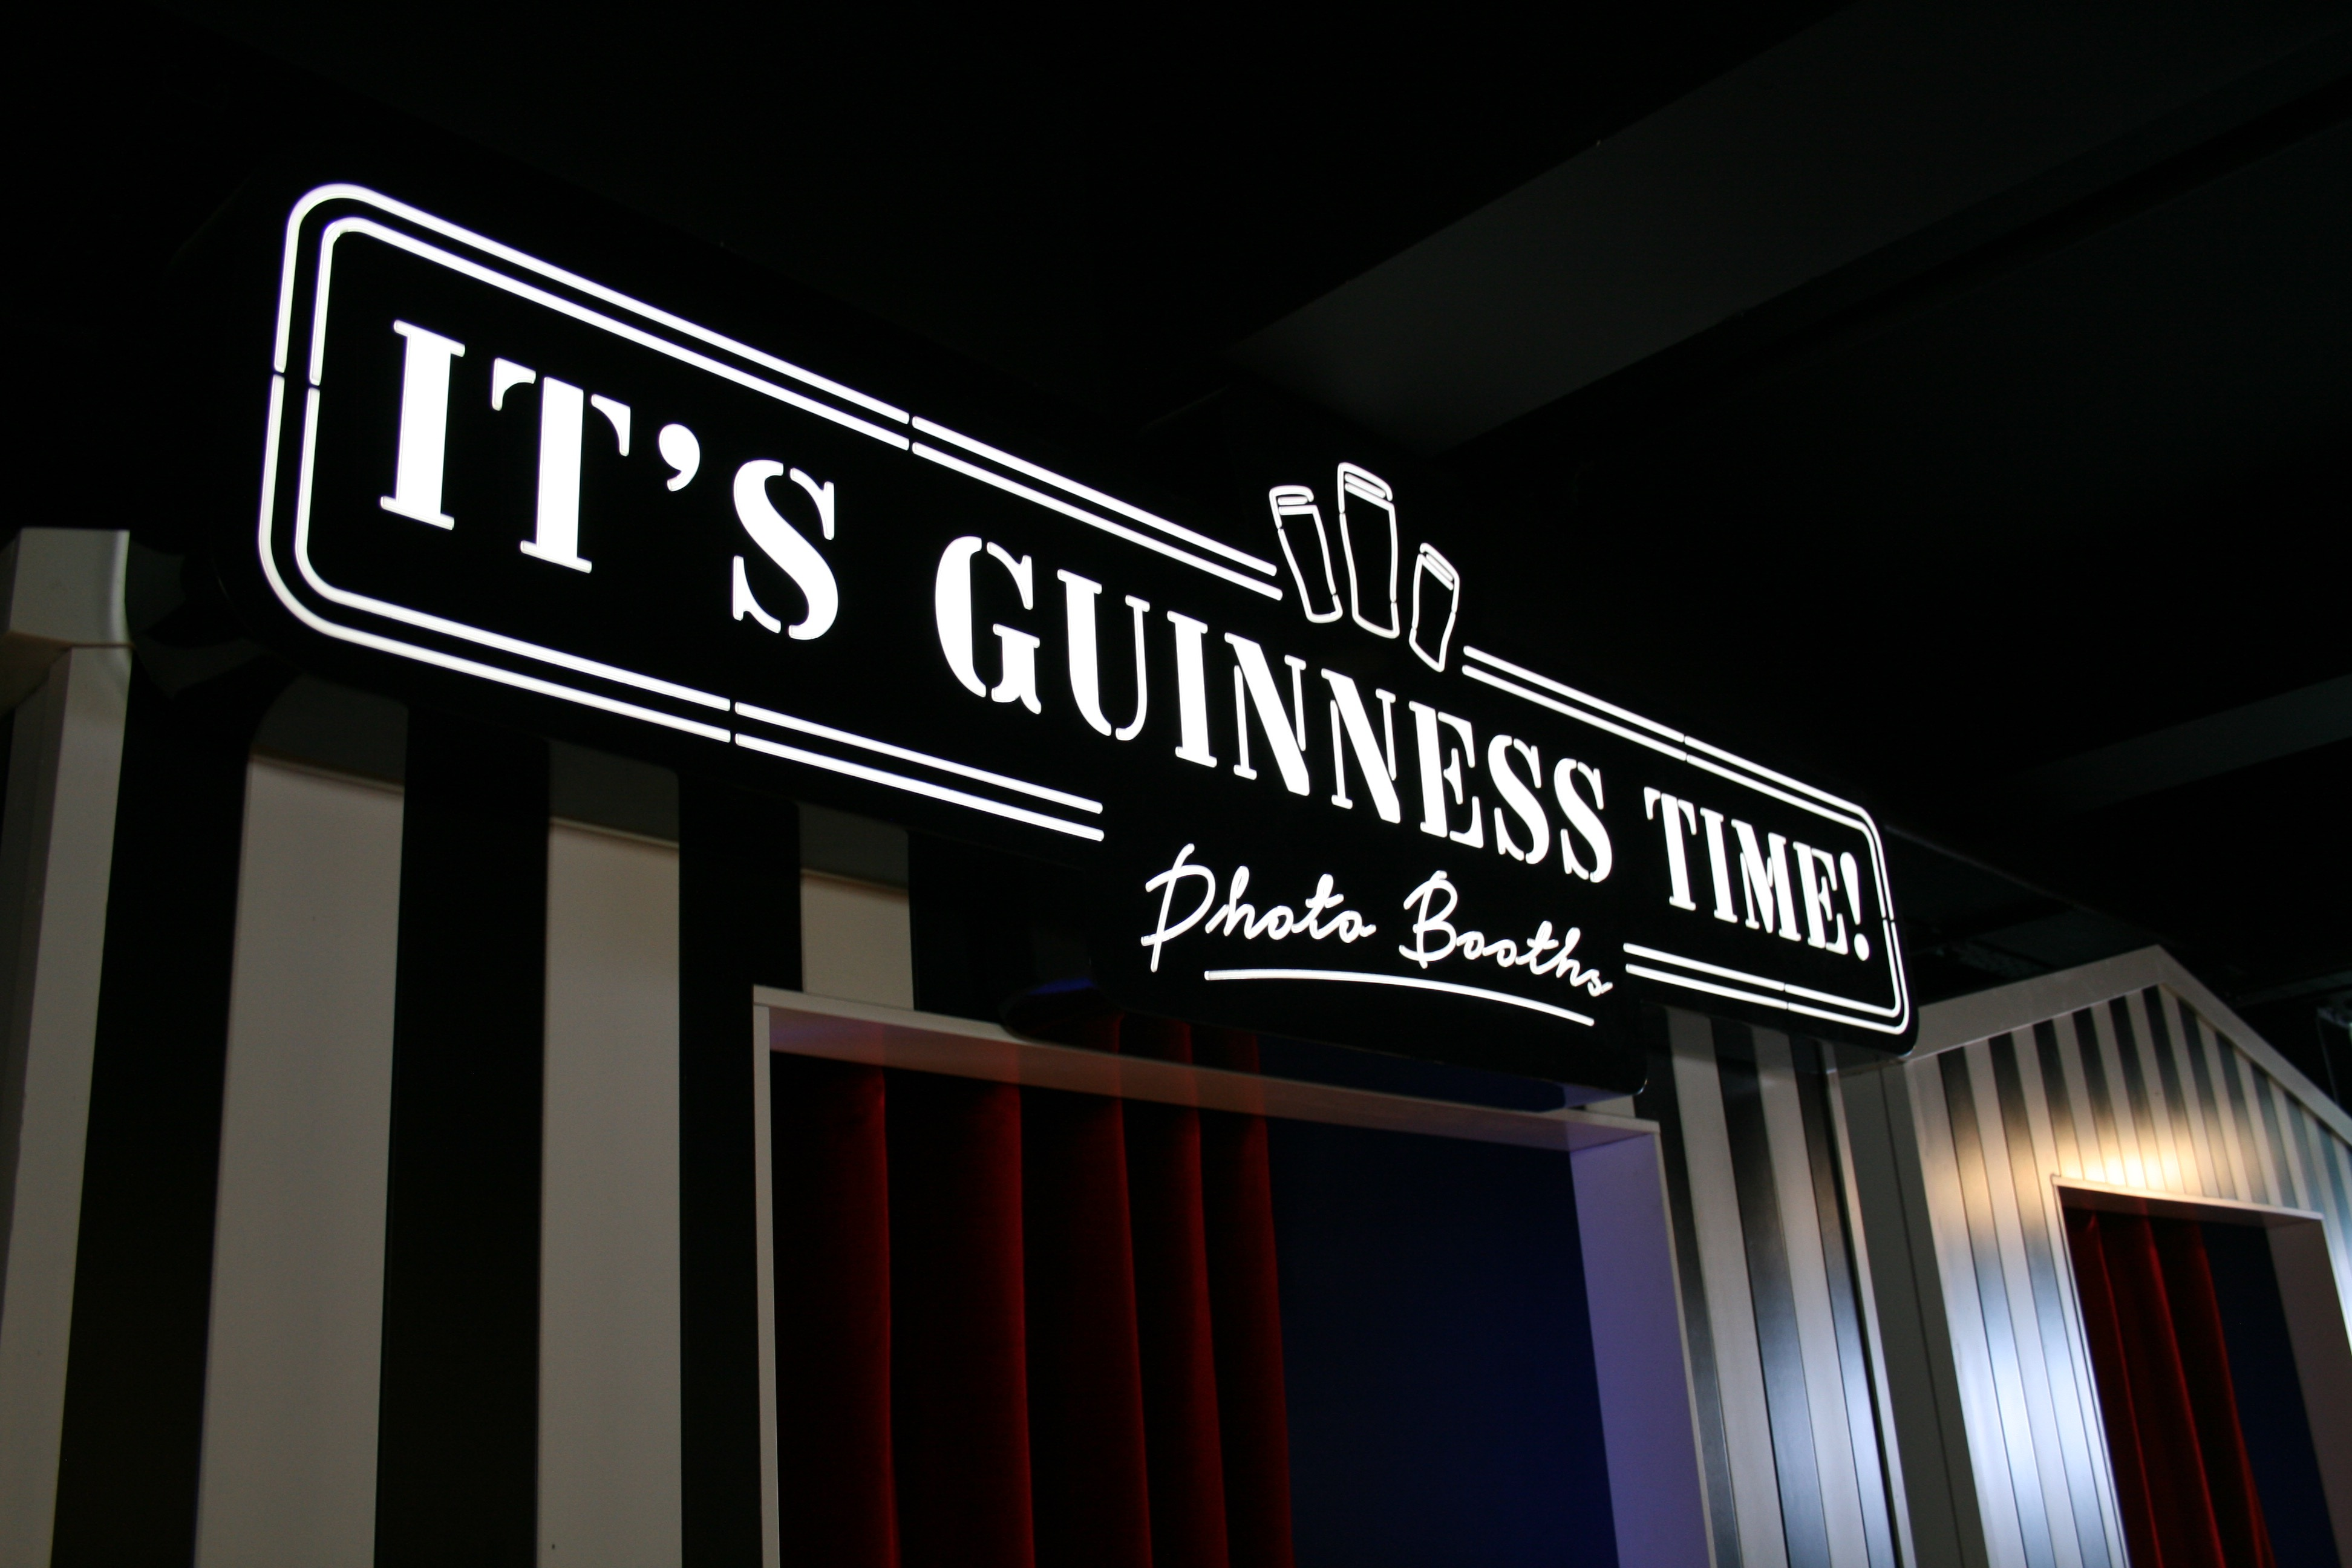 It's Guinness Time Photo Booth inside the Guinness Storehouse!